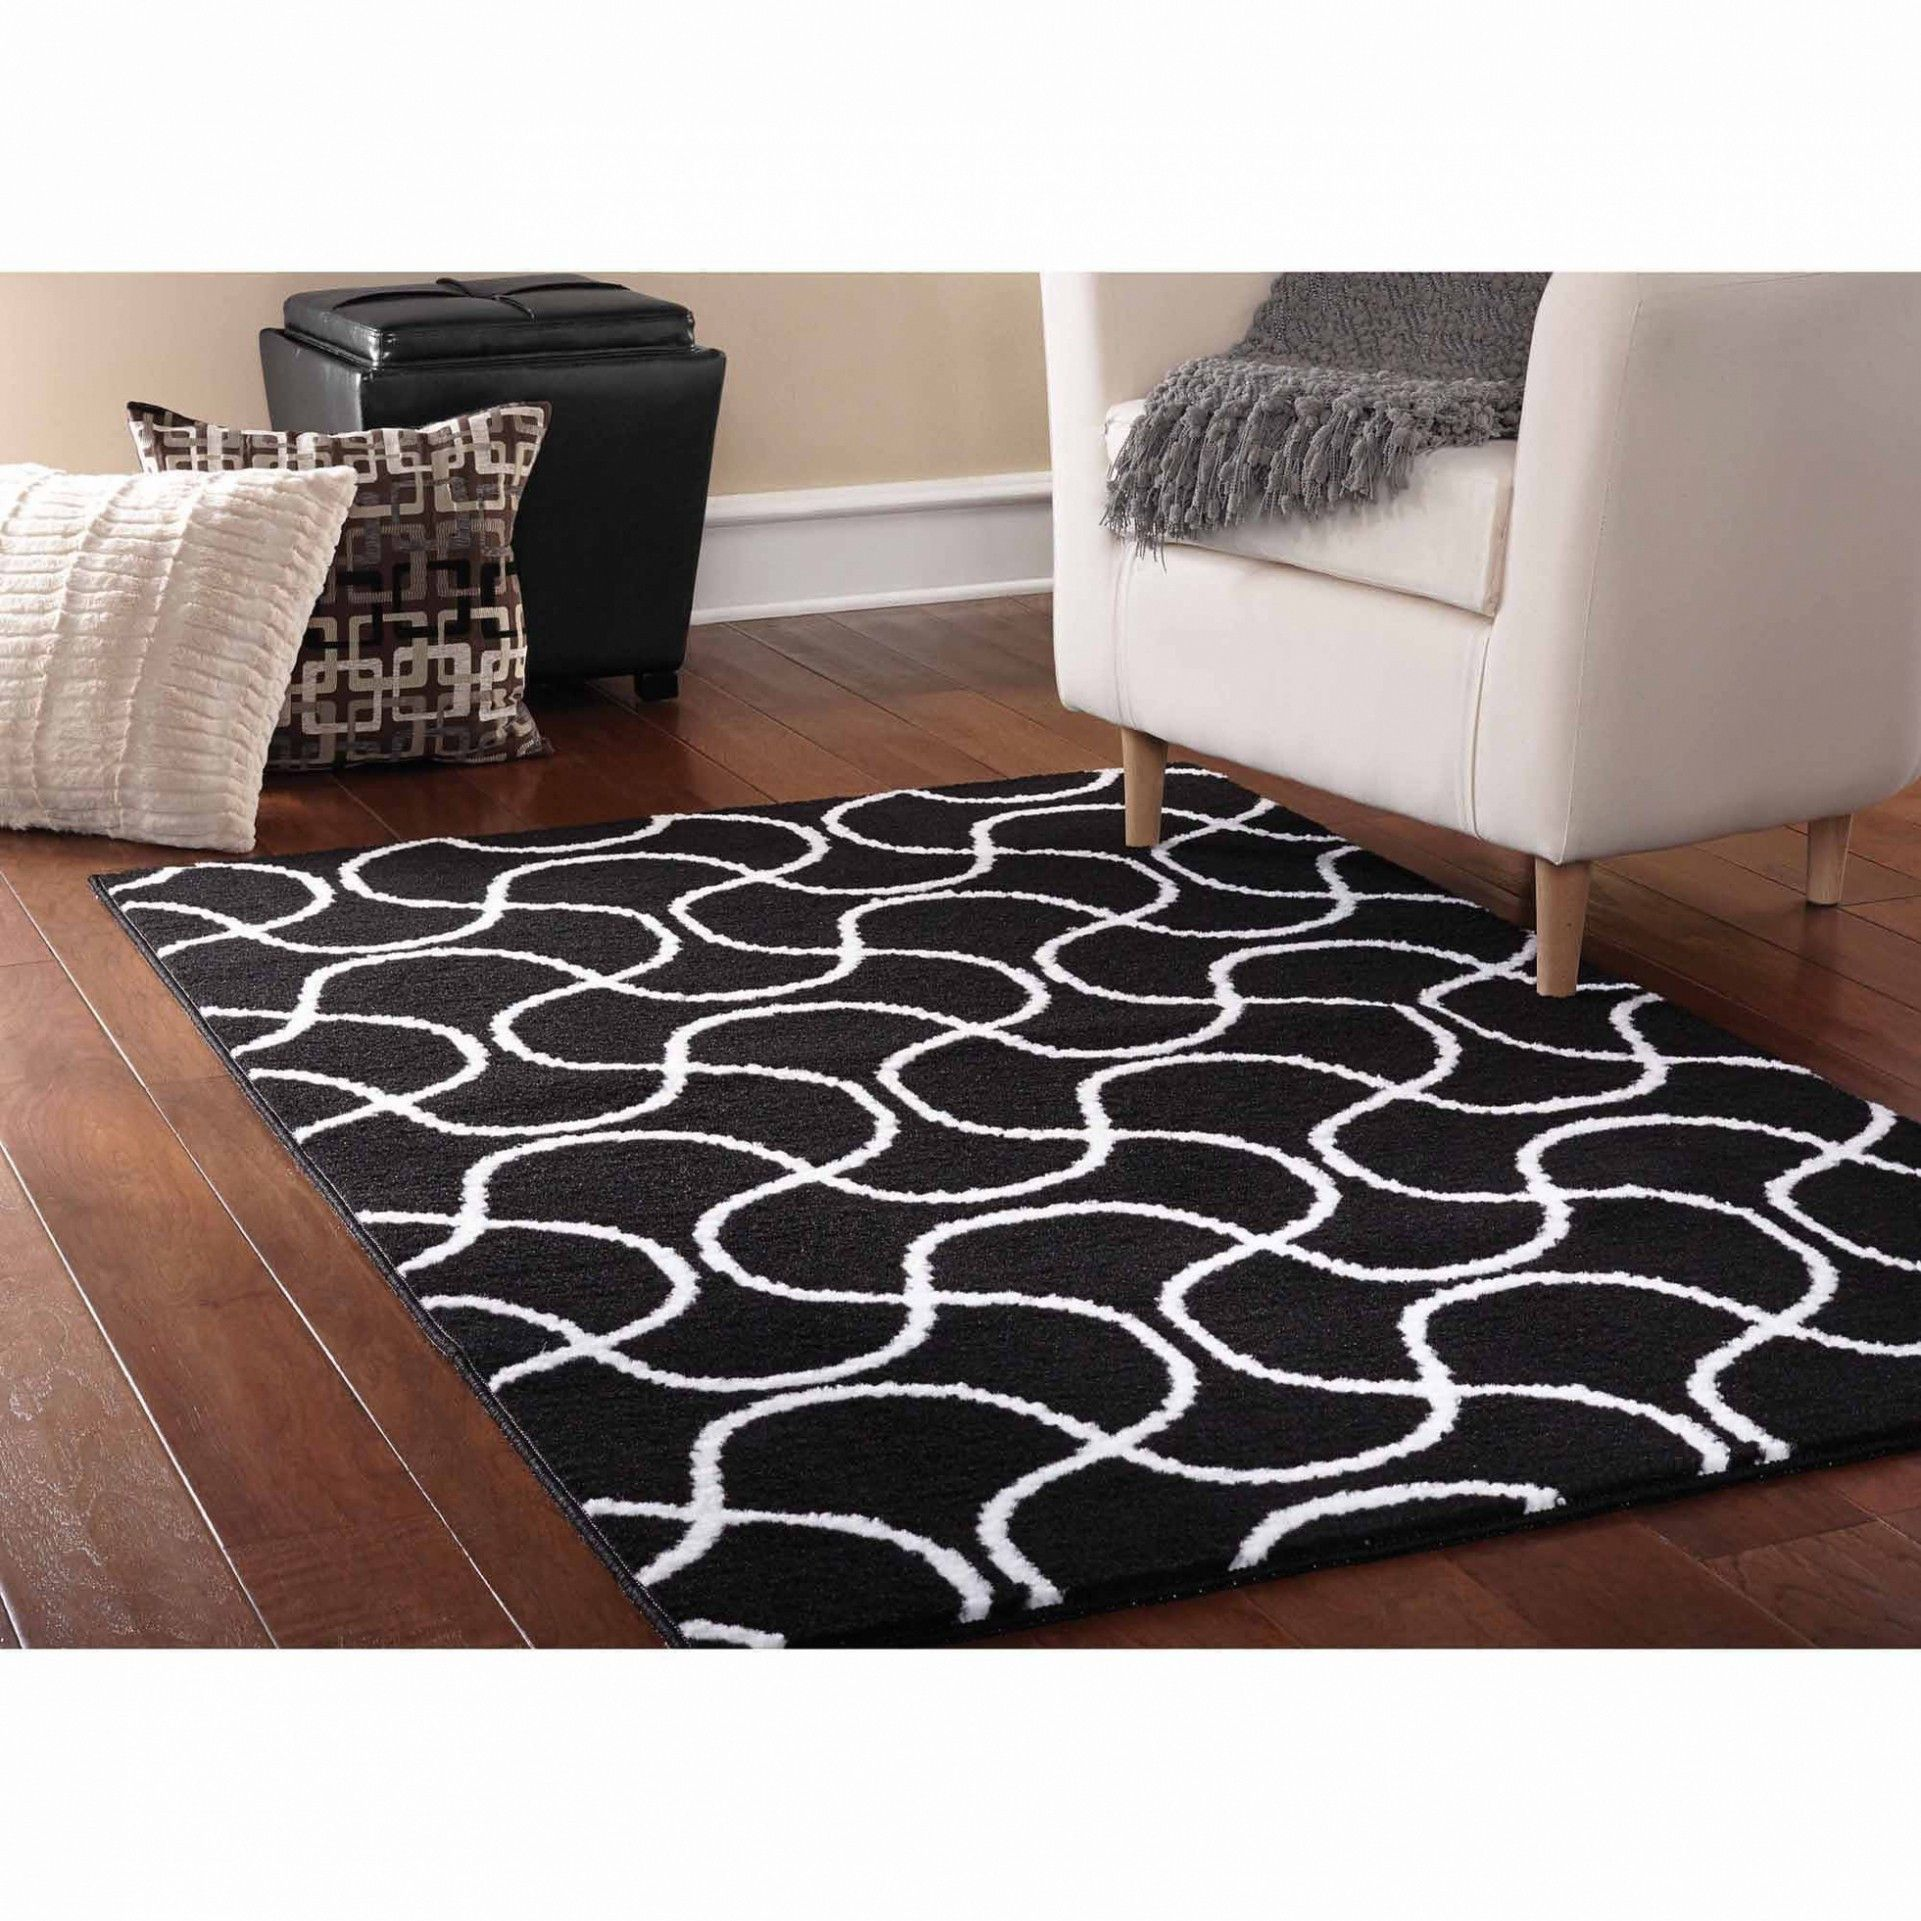 30 Lovely Walmart Area Rug Sets To Inspire You With Images